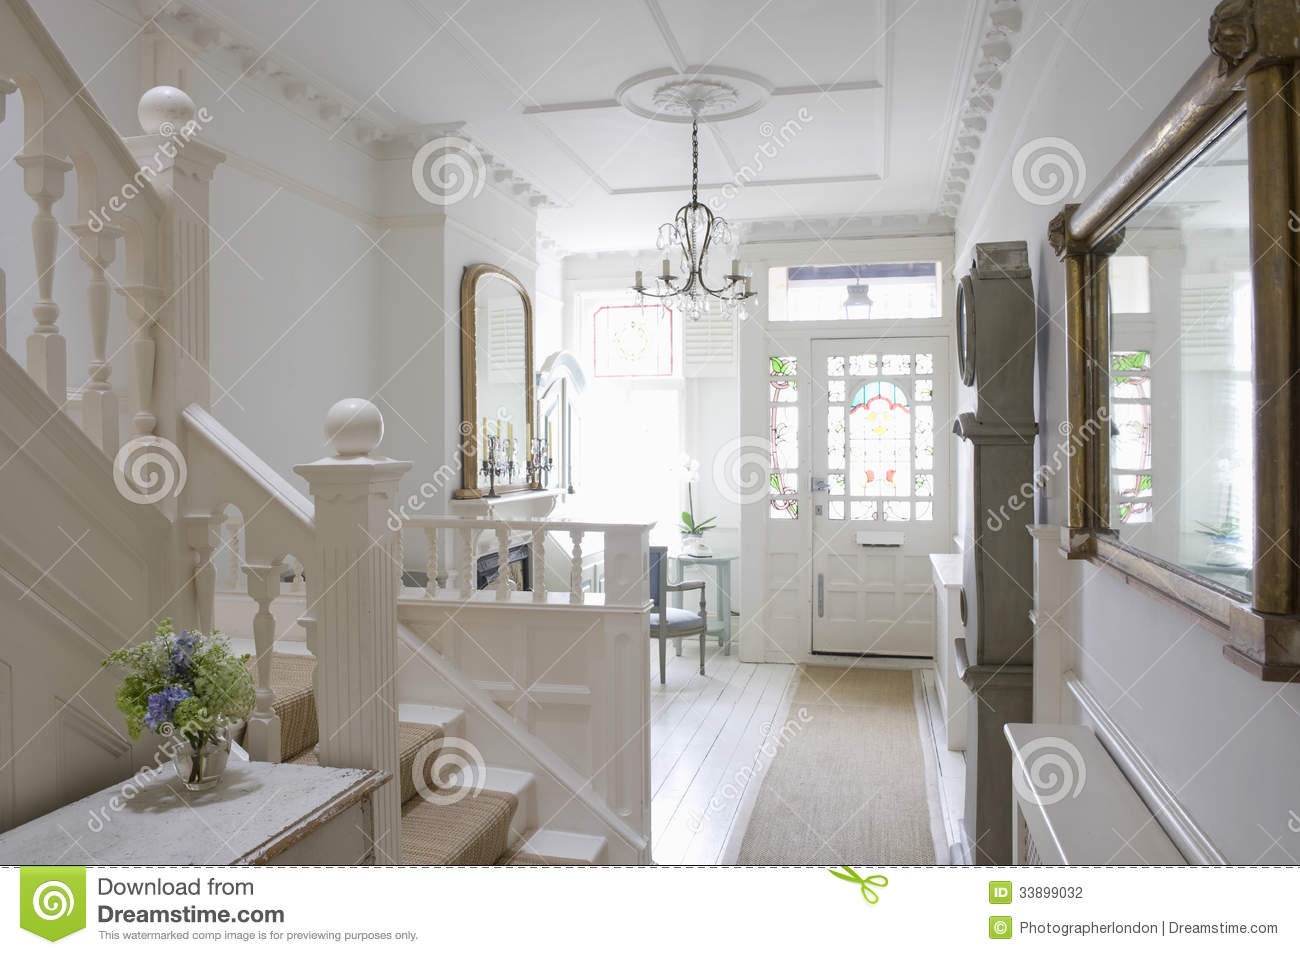 Entrance Foyer And Circulation In House : Entrance hall of house stock photo image decor